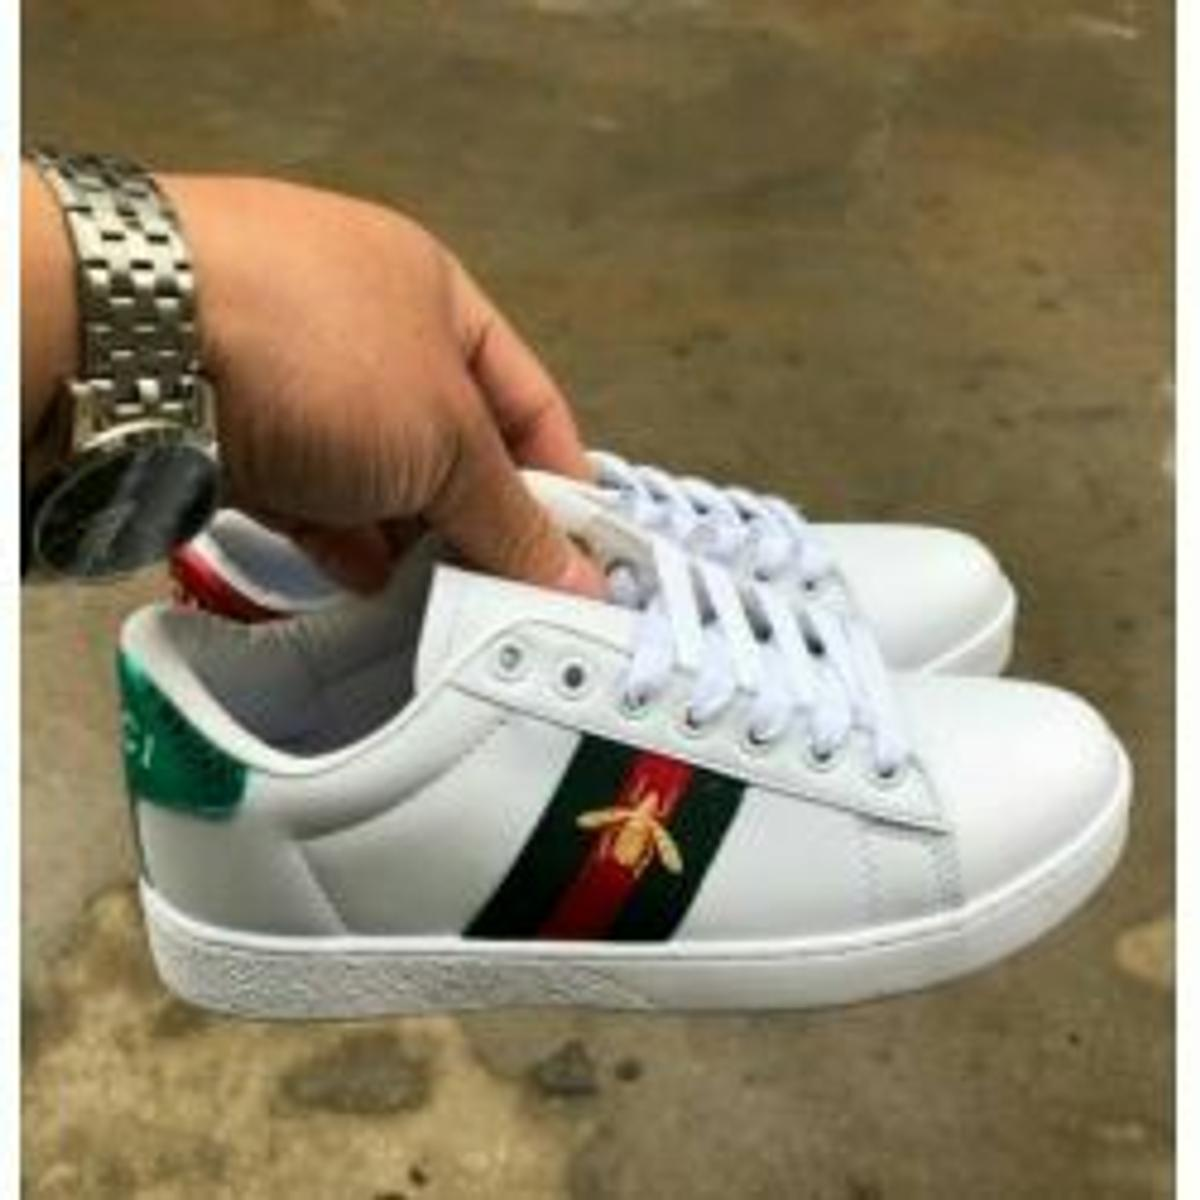 739f0abe5aaf Gucci sneakers size 6 . brand new! in Manchester for £55.00 for sale ...